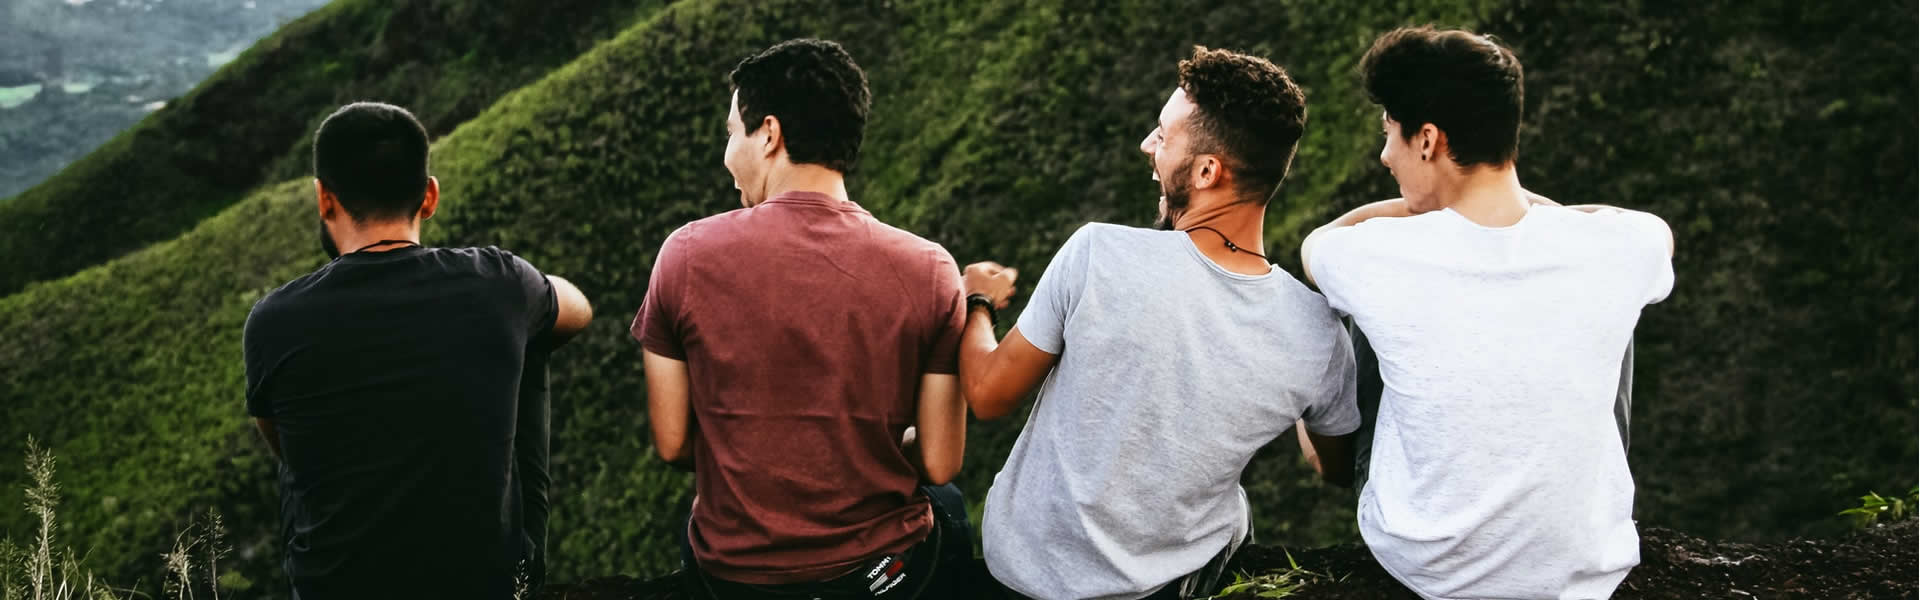 How to Profit From Friendships Without Harming the Relationship with Shasta Nelson